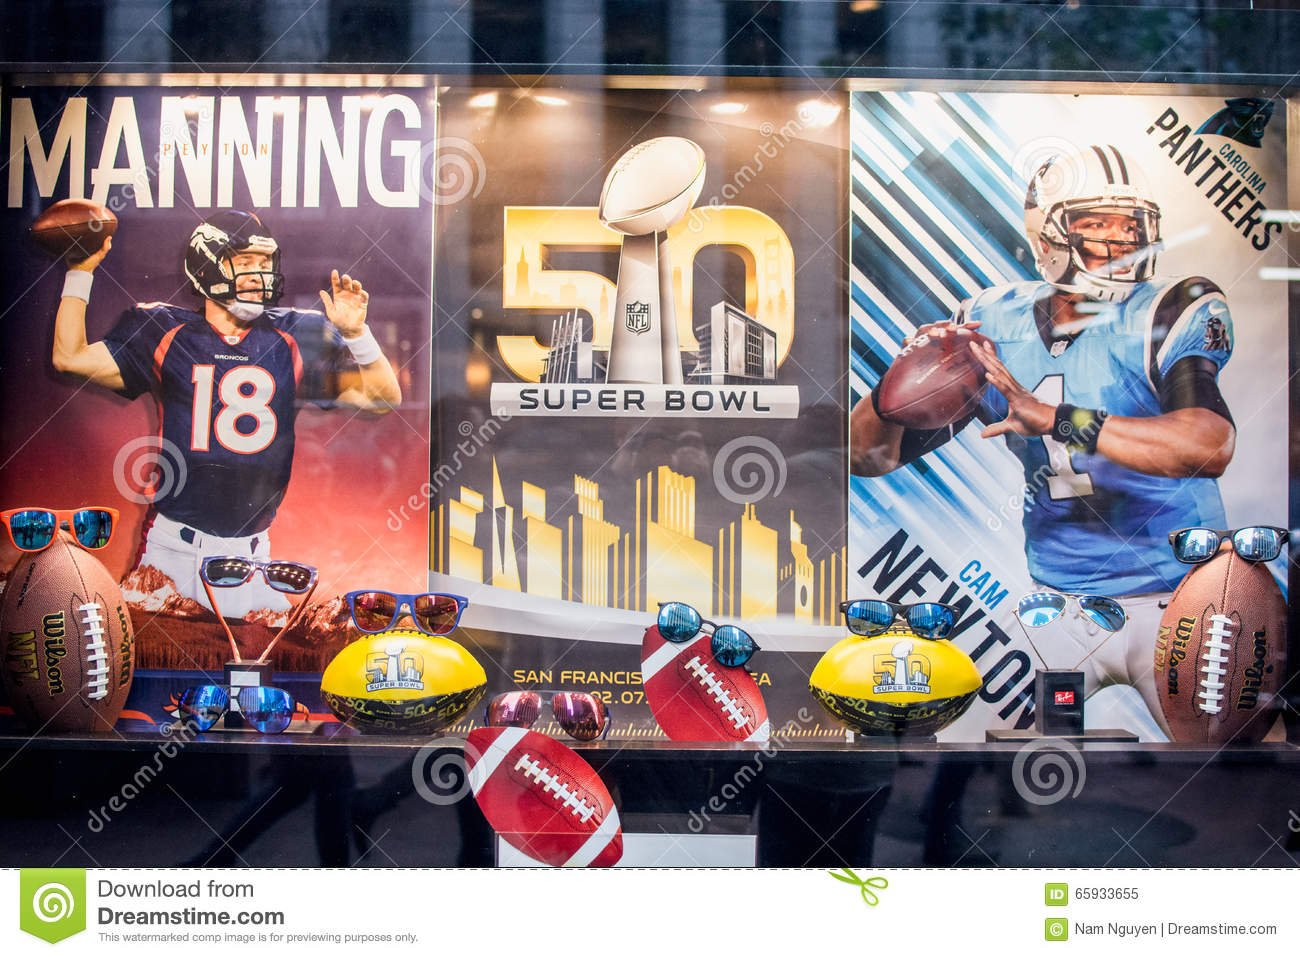 Super Bowl 50 Broncos and Panthers